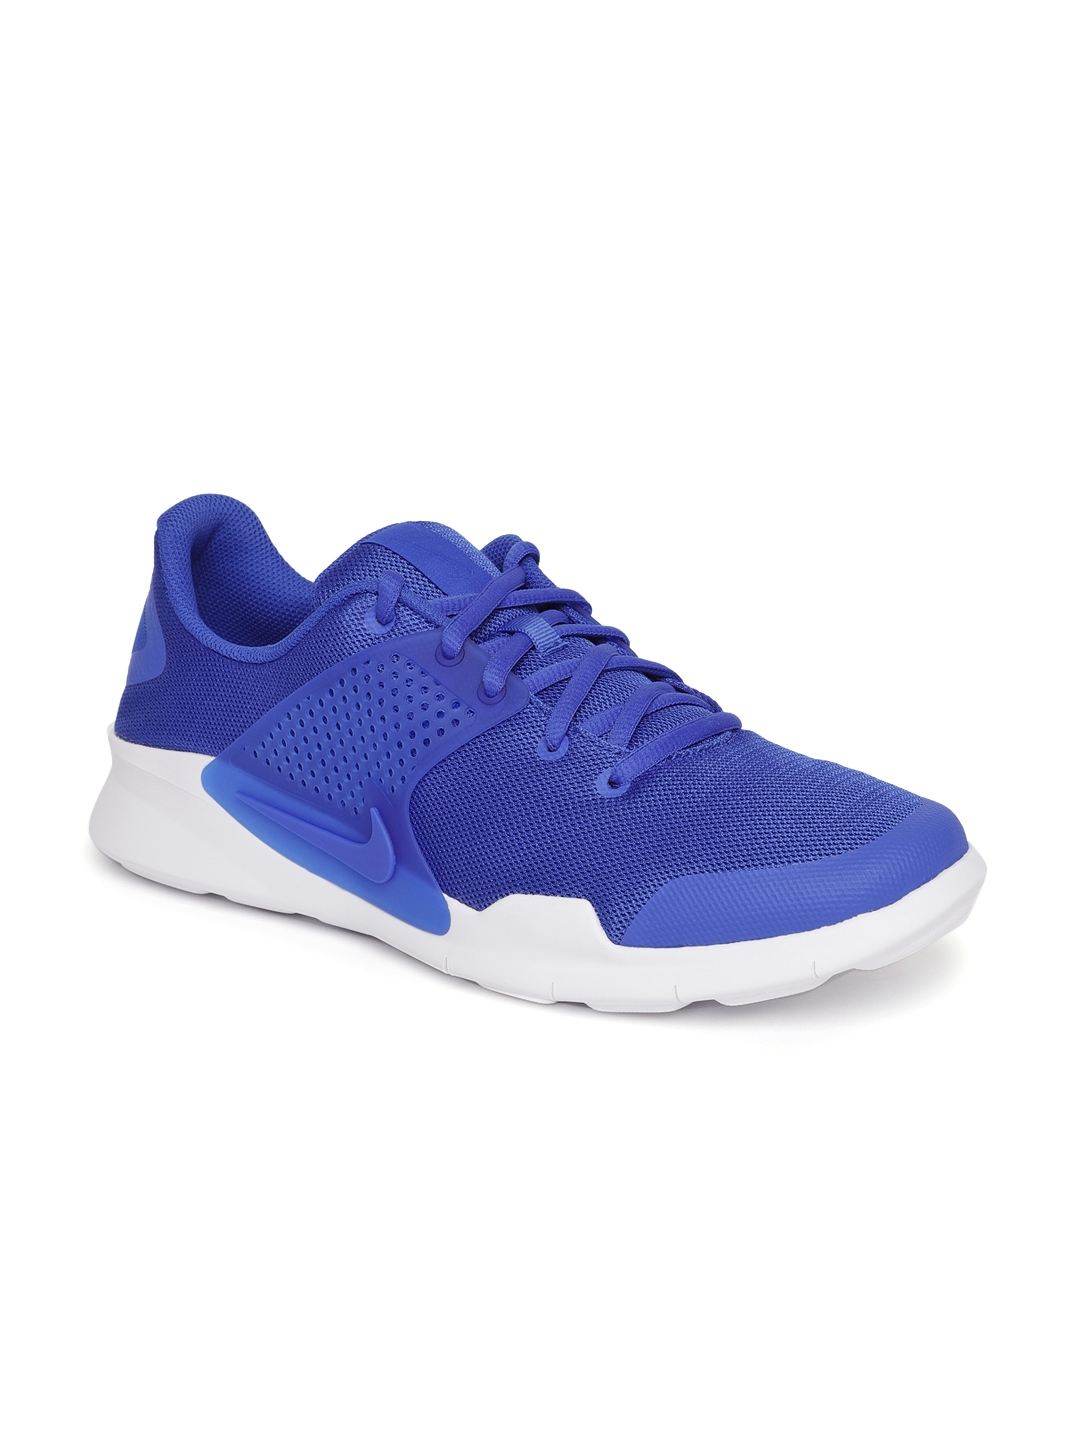 380863dffee7 Buy Nike Men Blue Arrowz Sneakers - Casual Shoes for Men 4030145 ...